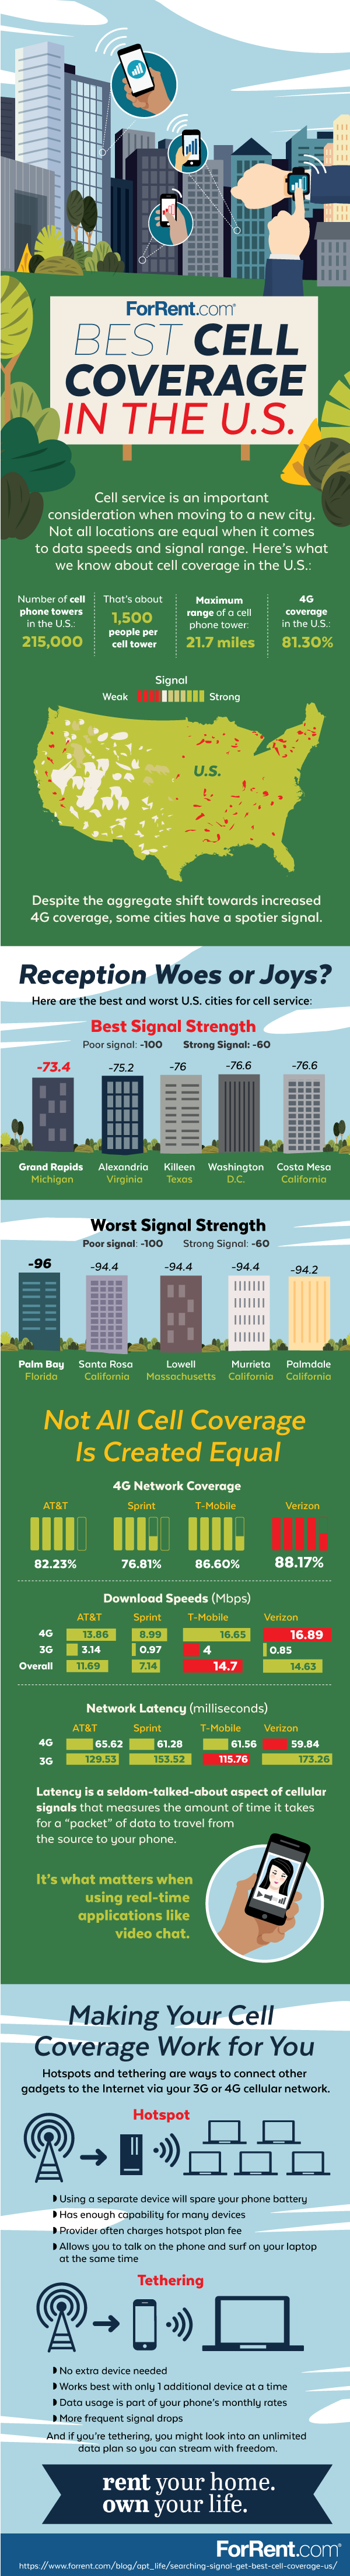 Best Cell Coverage in the U.S.